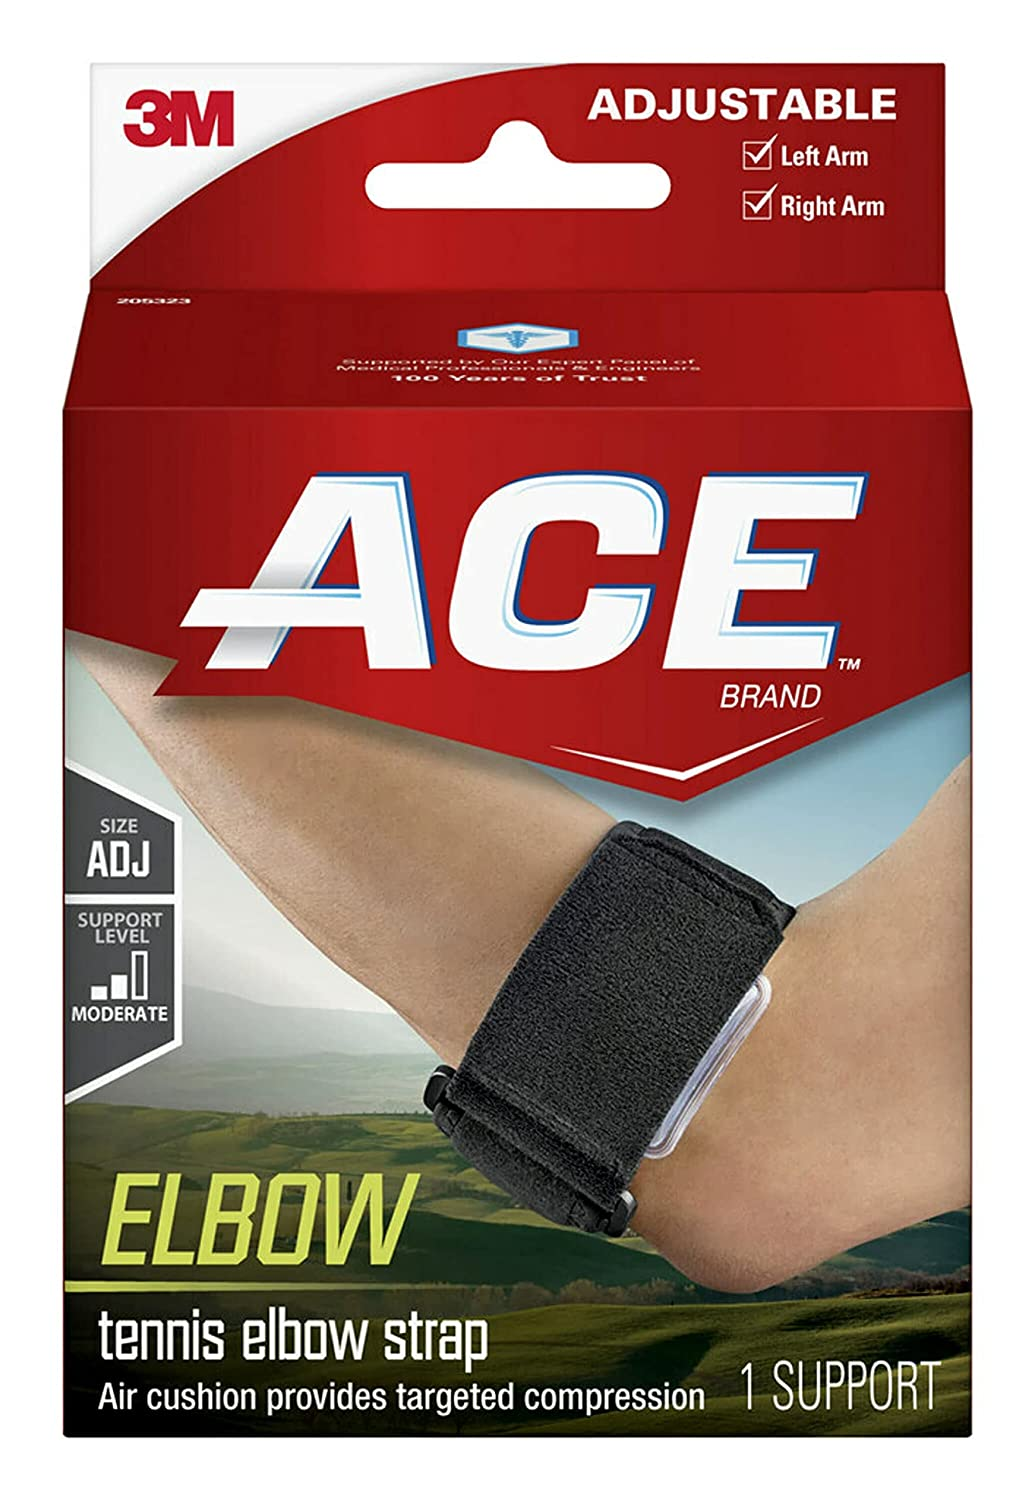 ACE-229032 Tennis Elbow Support One Size Nashville-Davidson Mall Black Outstanding Fits 1 Co Most